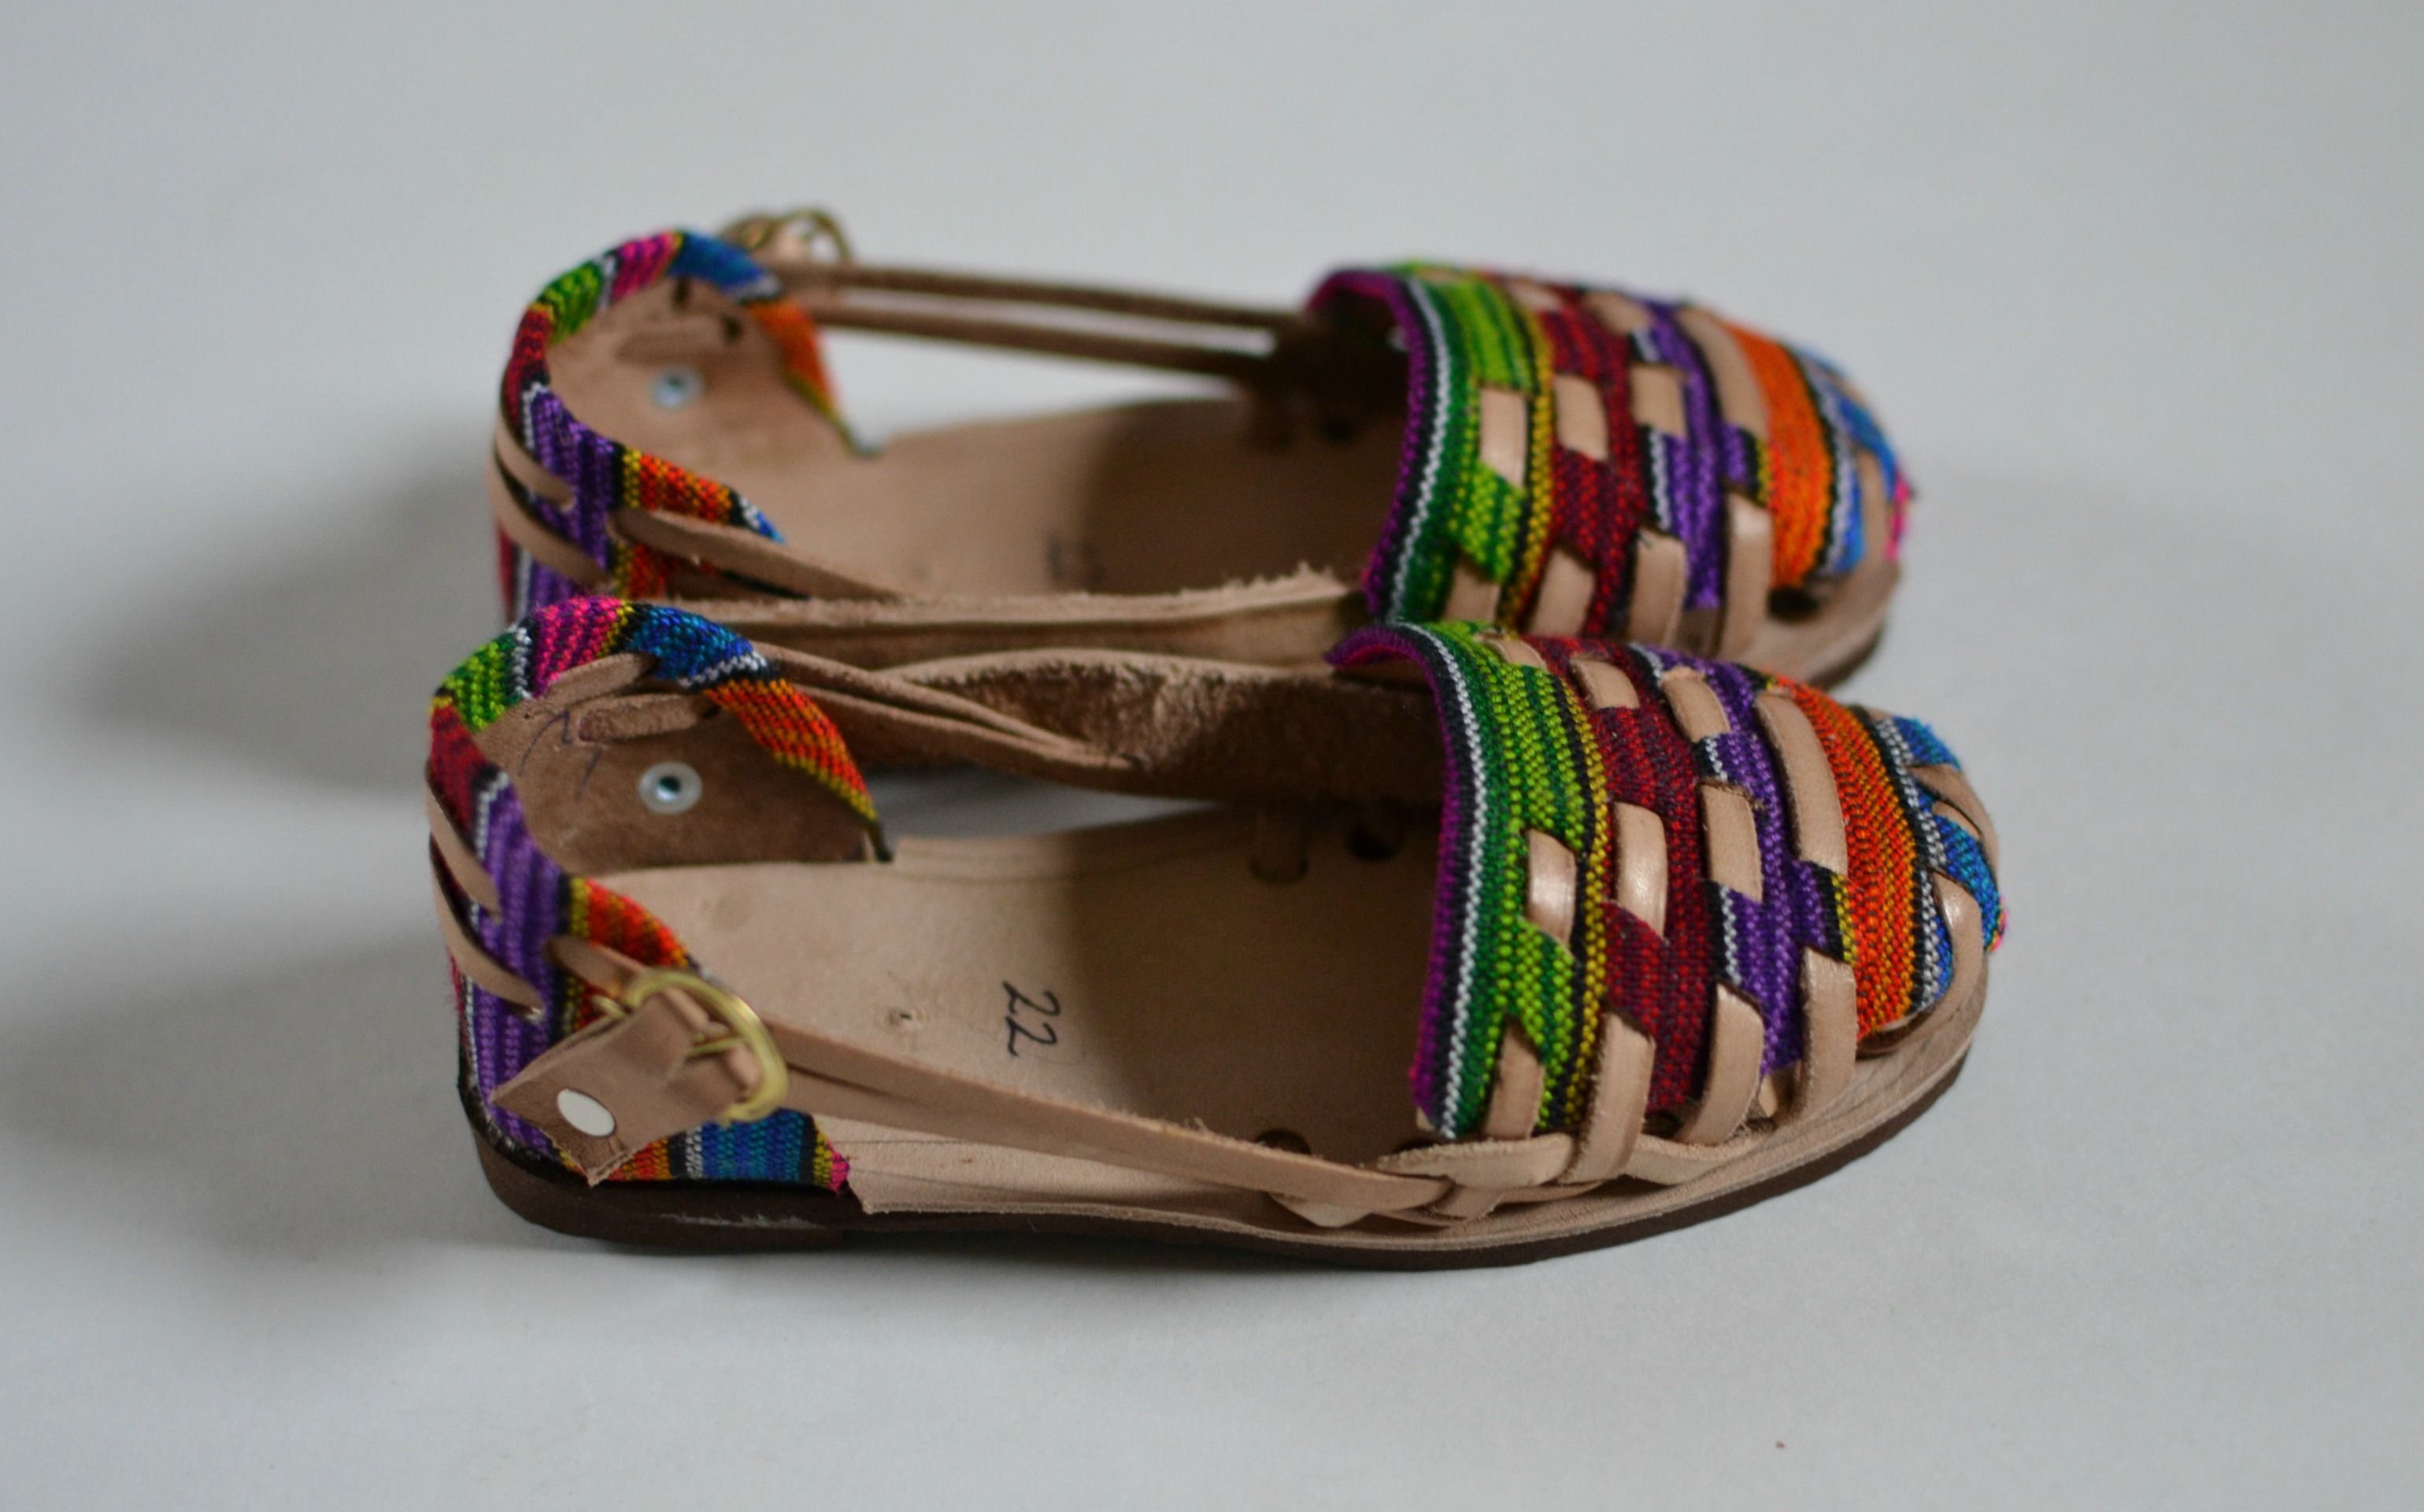 Authentic+caites+(huaraches/sandals)+handmade+by+artisans+in+Guatemala.+